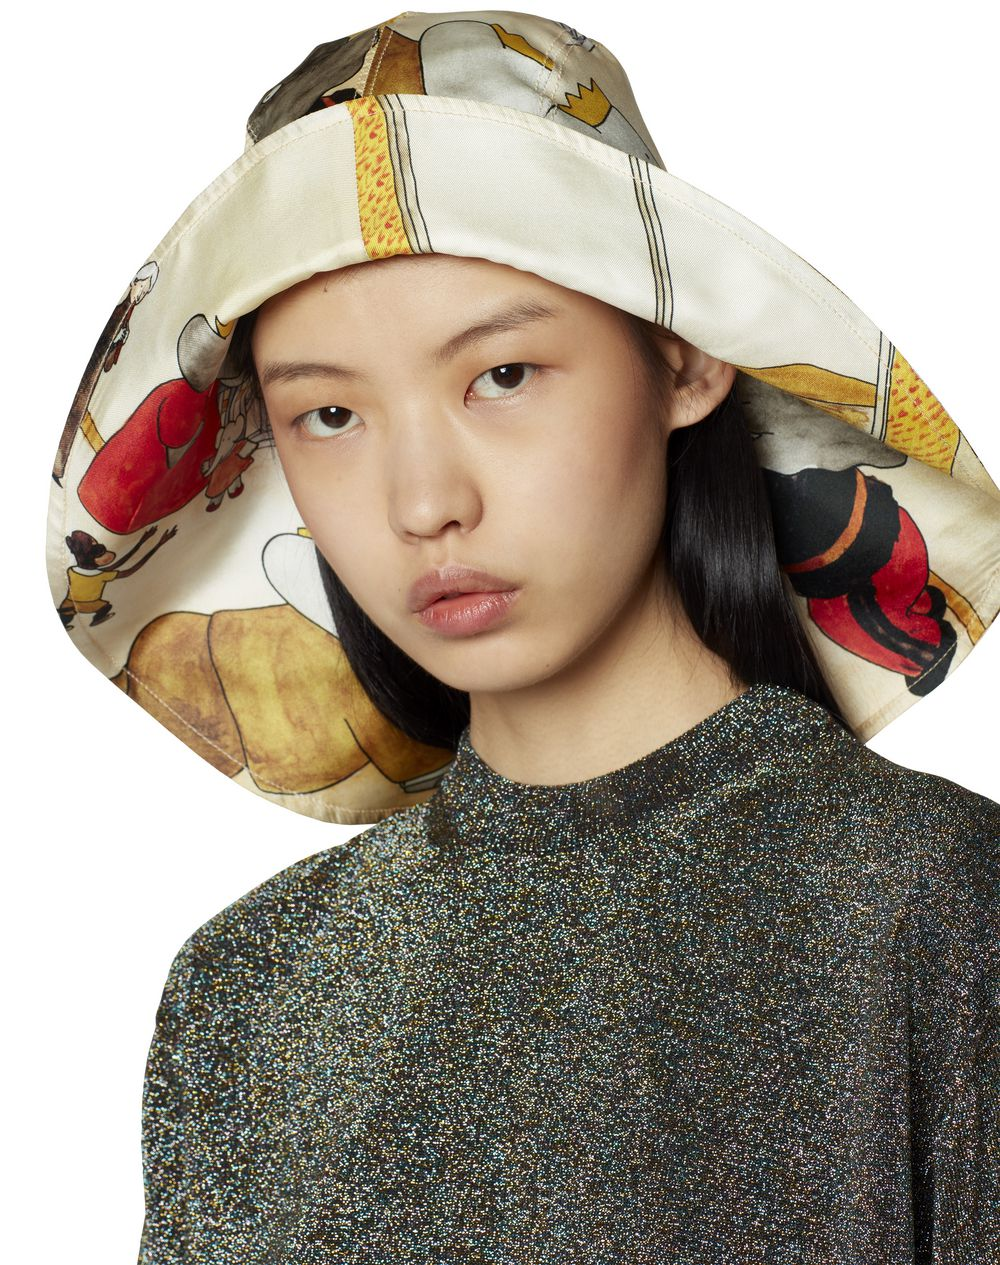 SAILOR'S HAT IN PRINTED TWILL - Lanvin